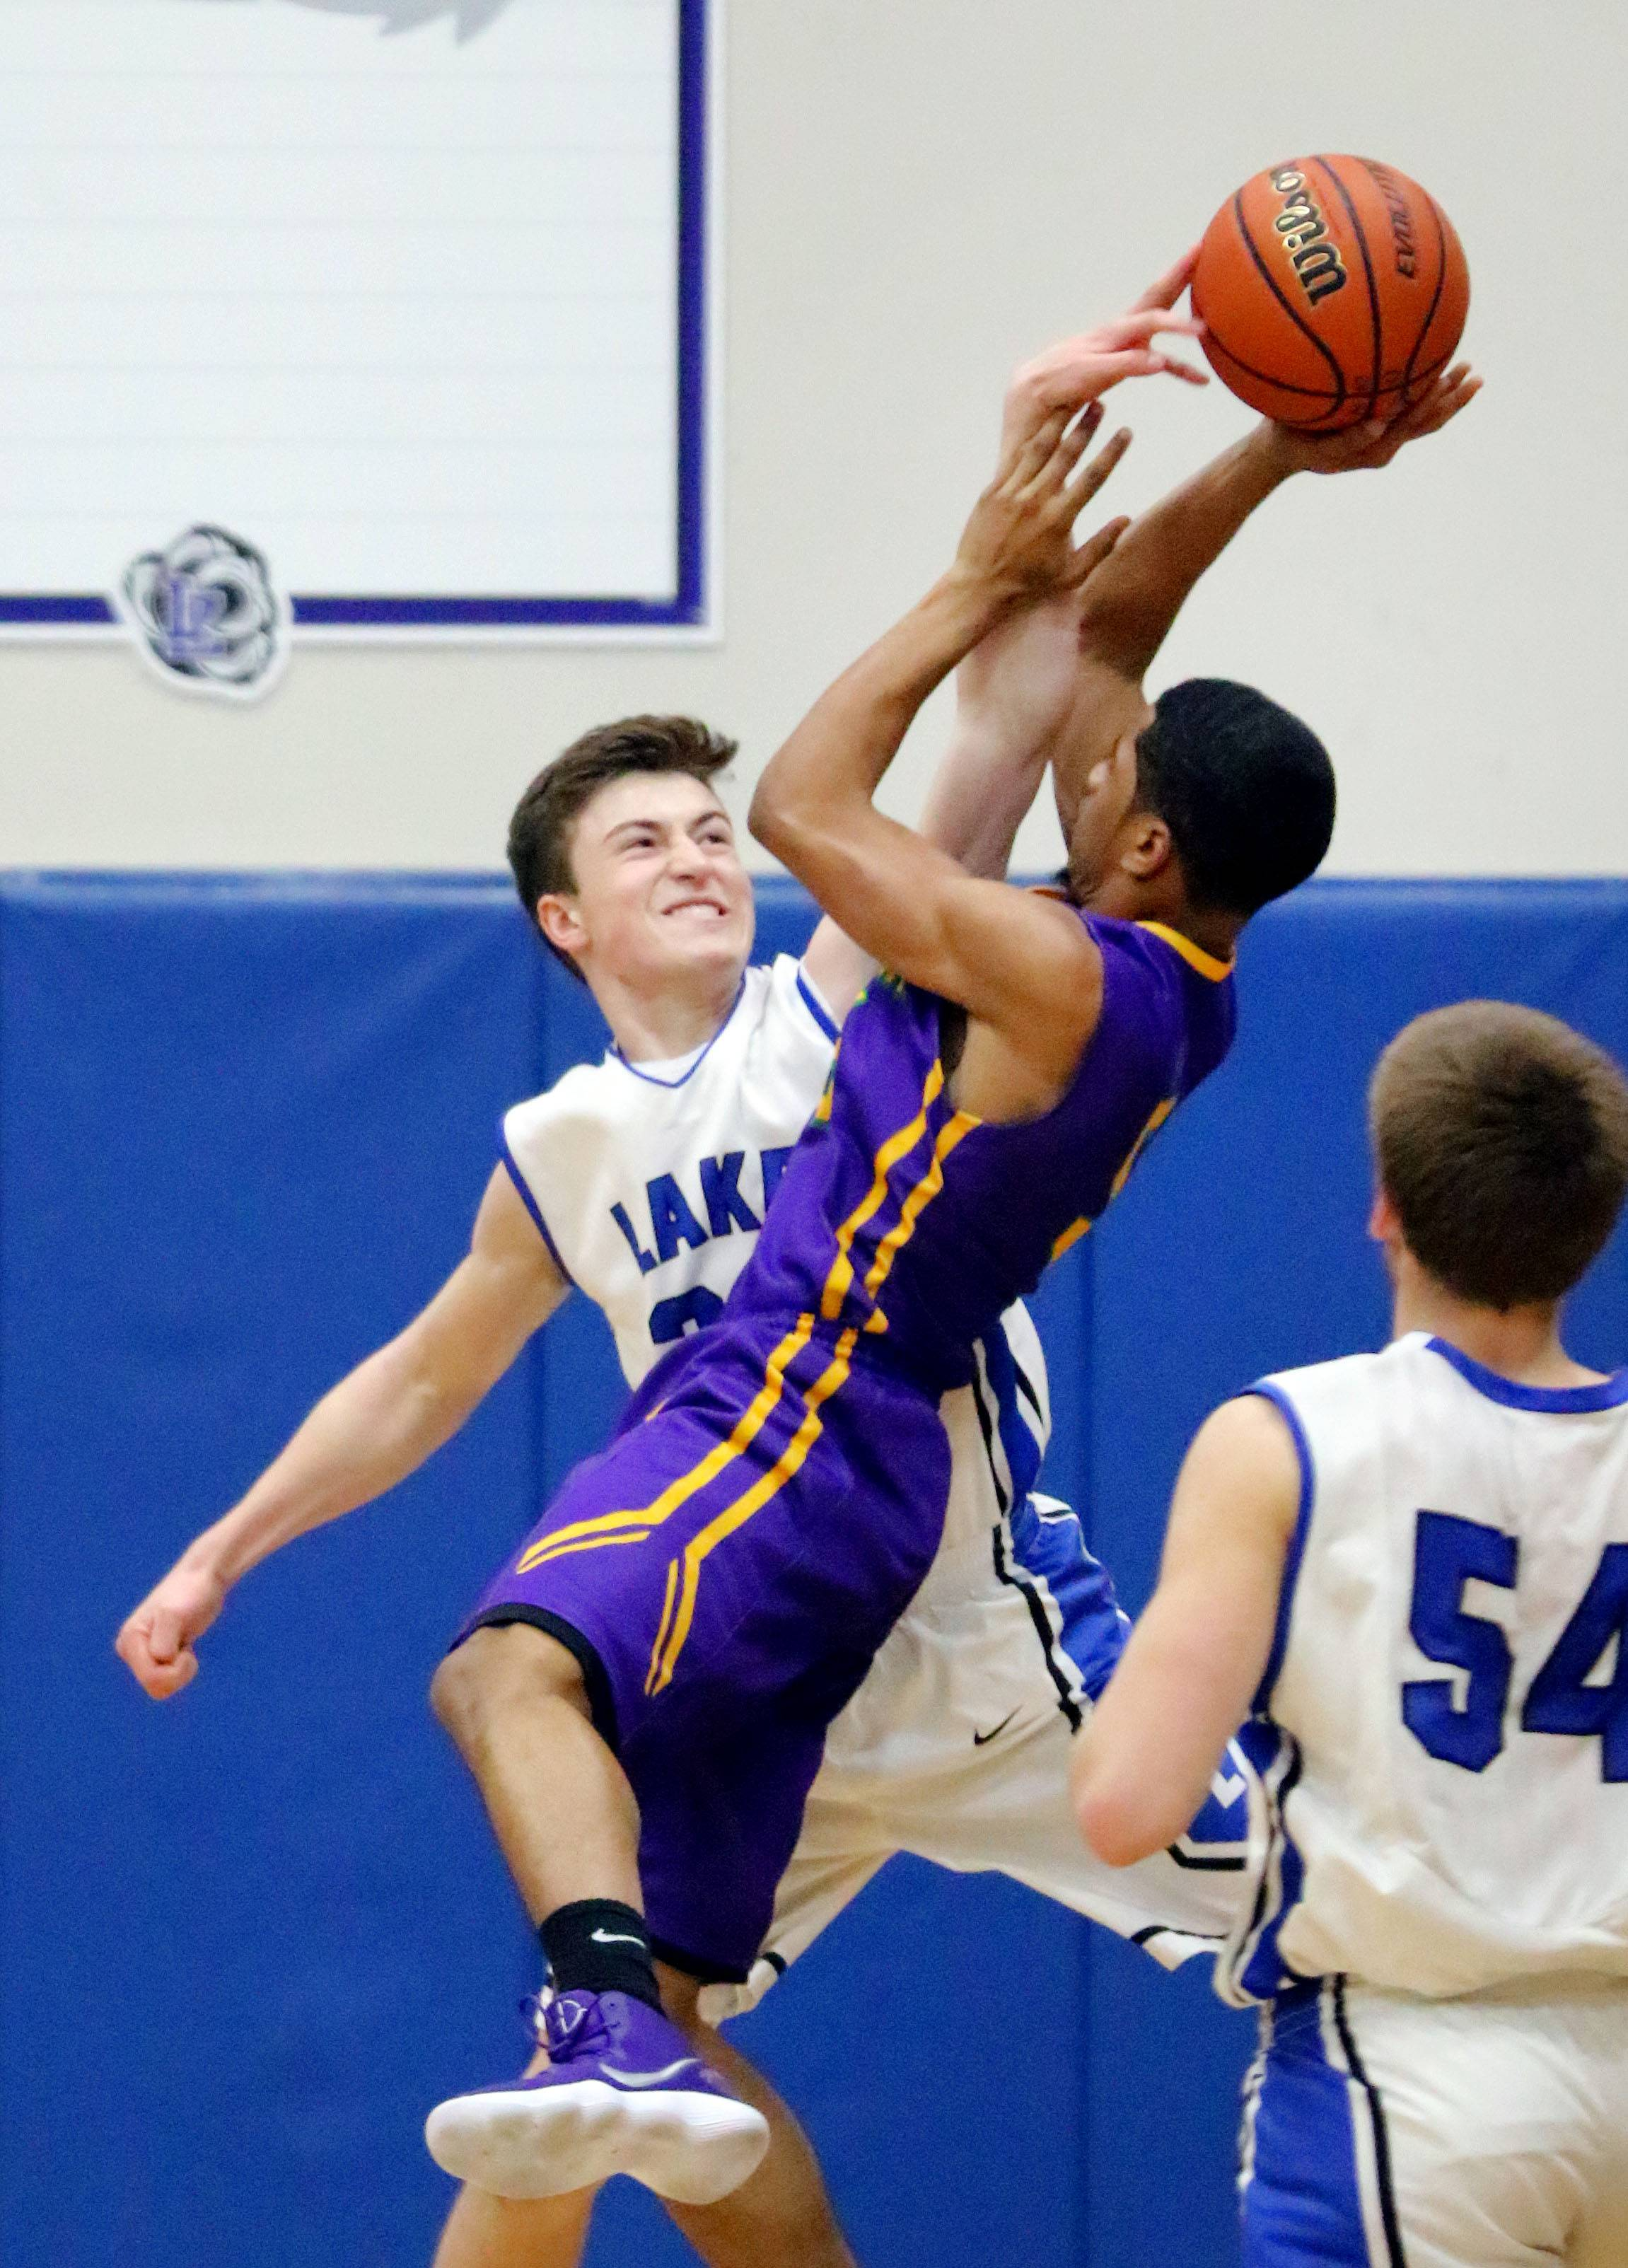 Lake Zurich's Will Tucker, left, defends against Waukegan's Jordan Brown on Friday in Lake Zurich.